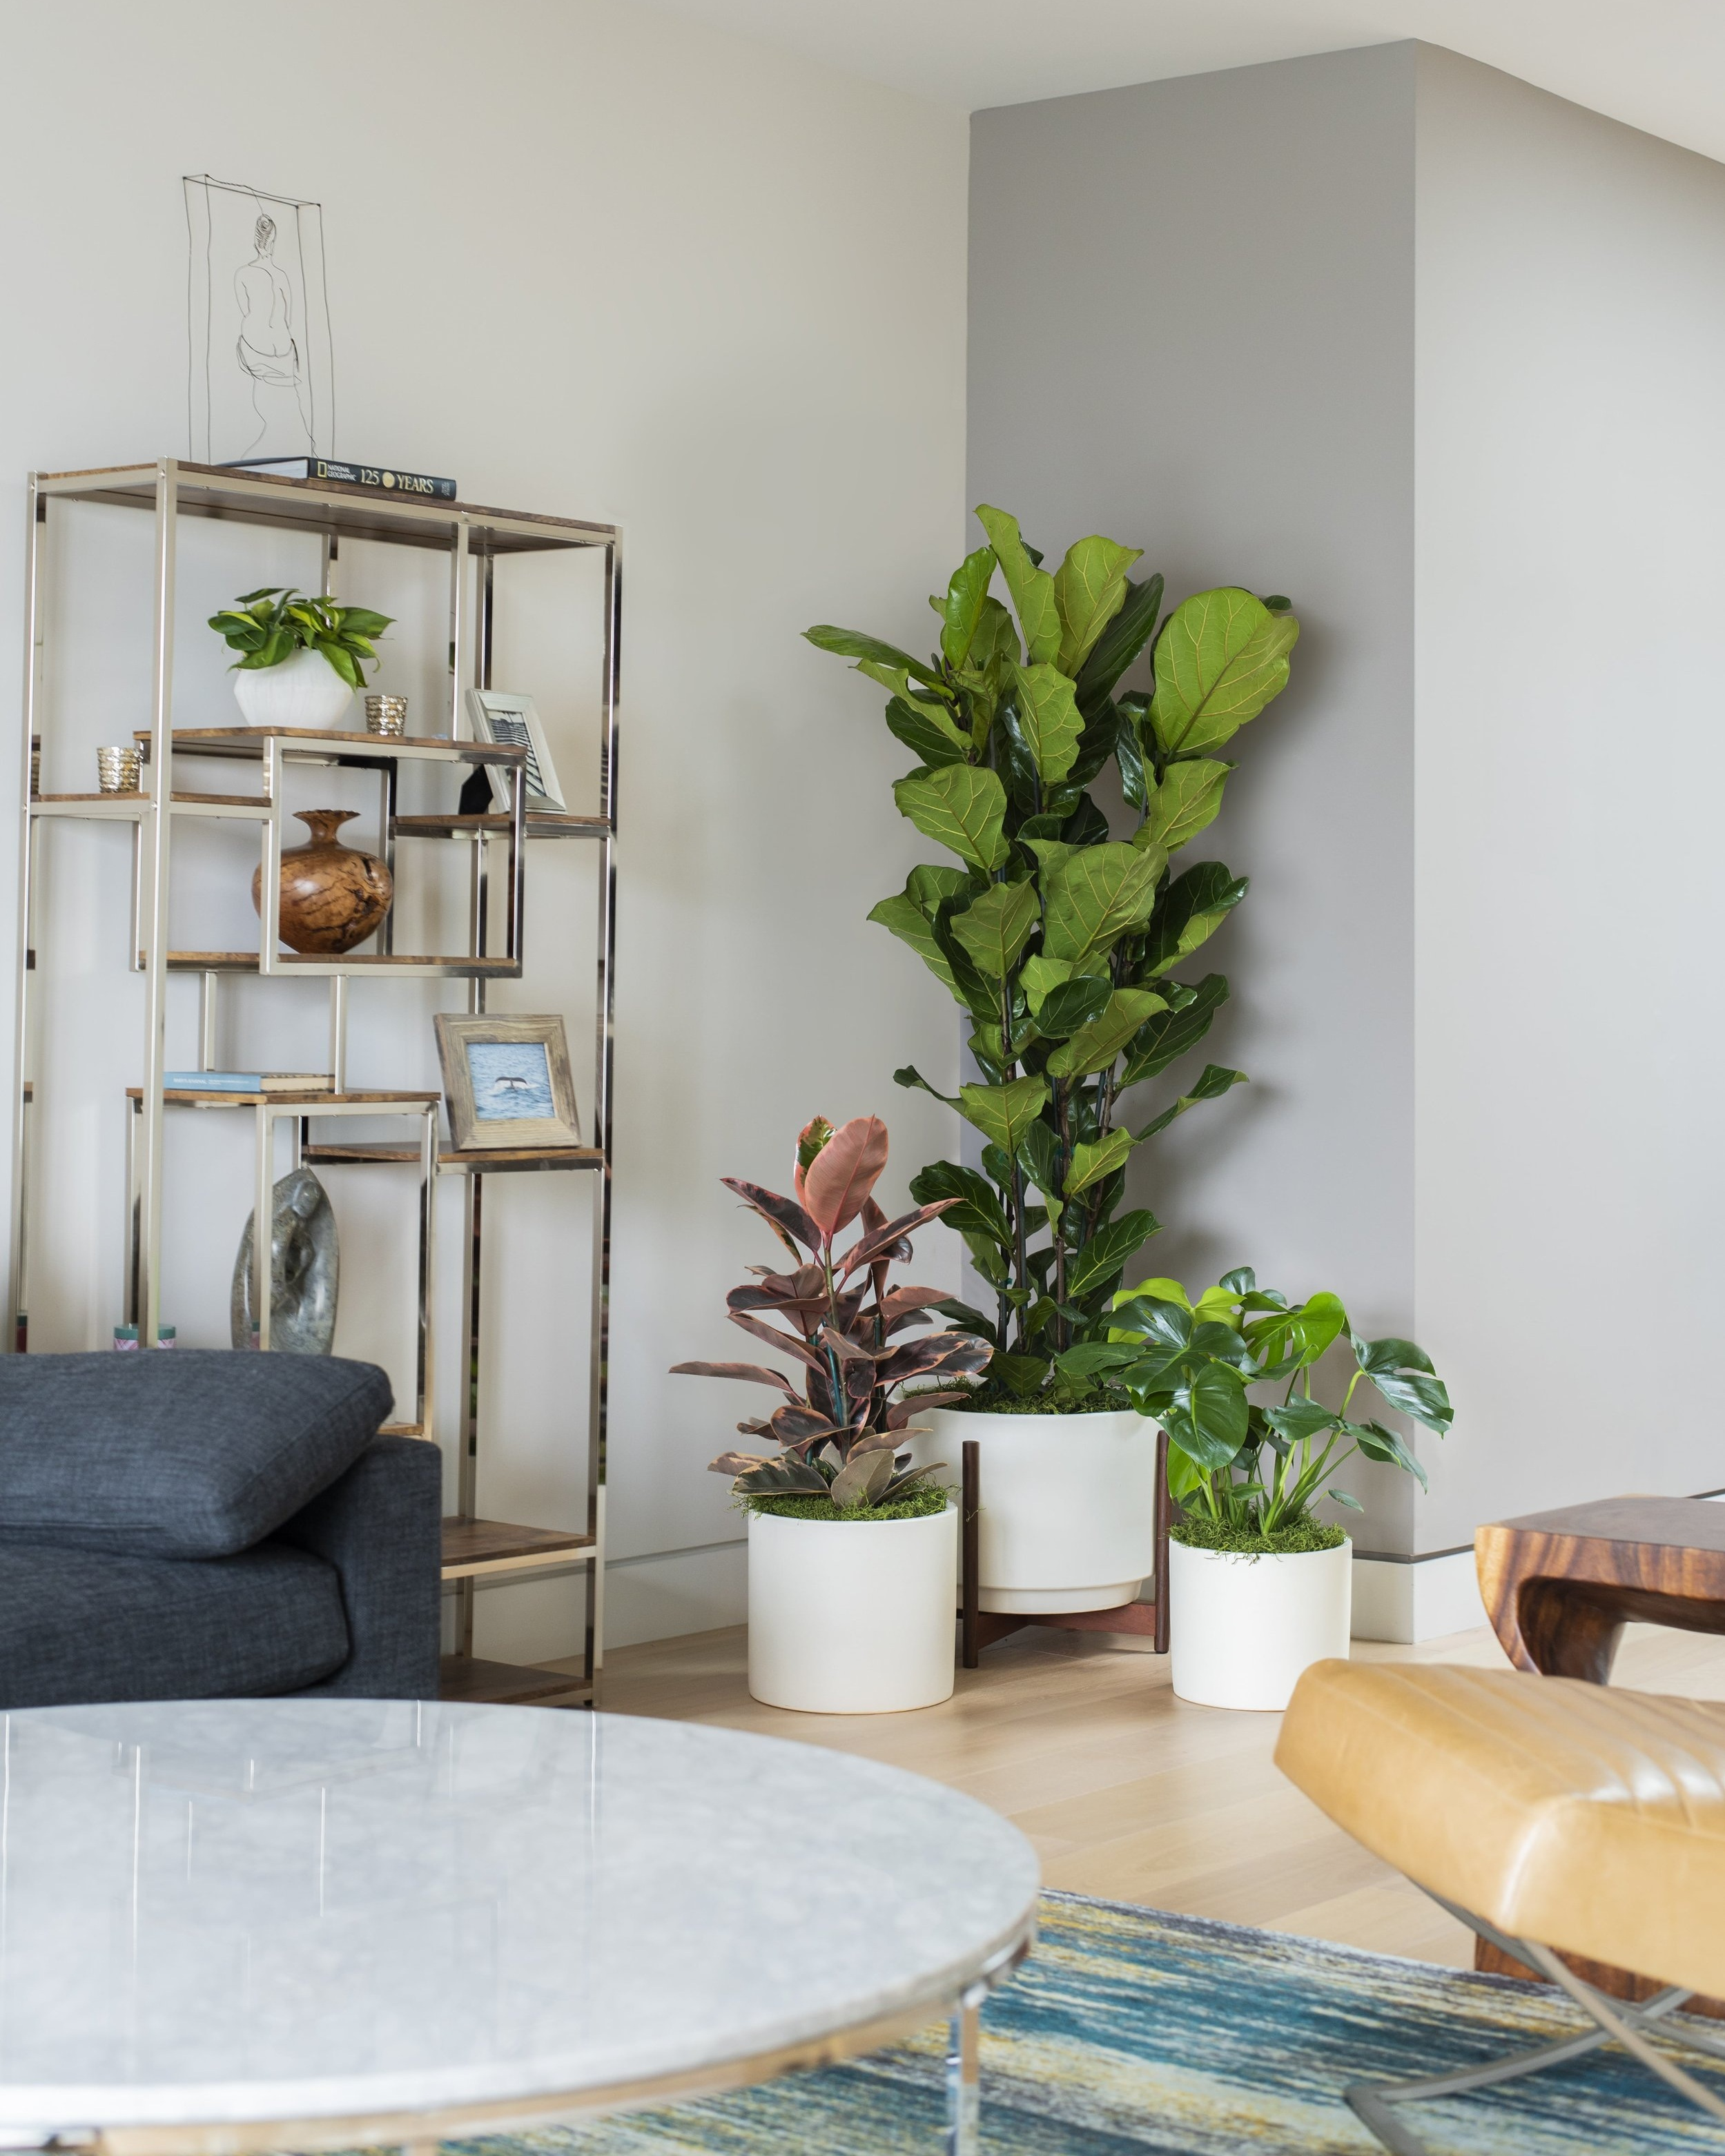 Delivery & Installation - We'll do the heavy lifting. Our team of plant fairies will beautifully stage your new green additions, leaving you with a fresh photo-worthy look.